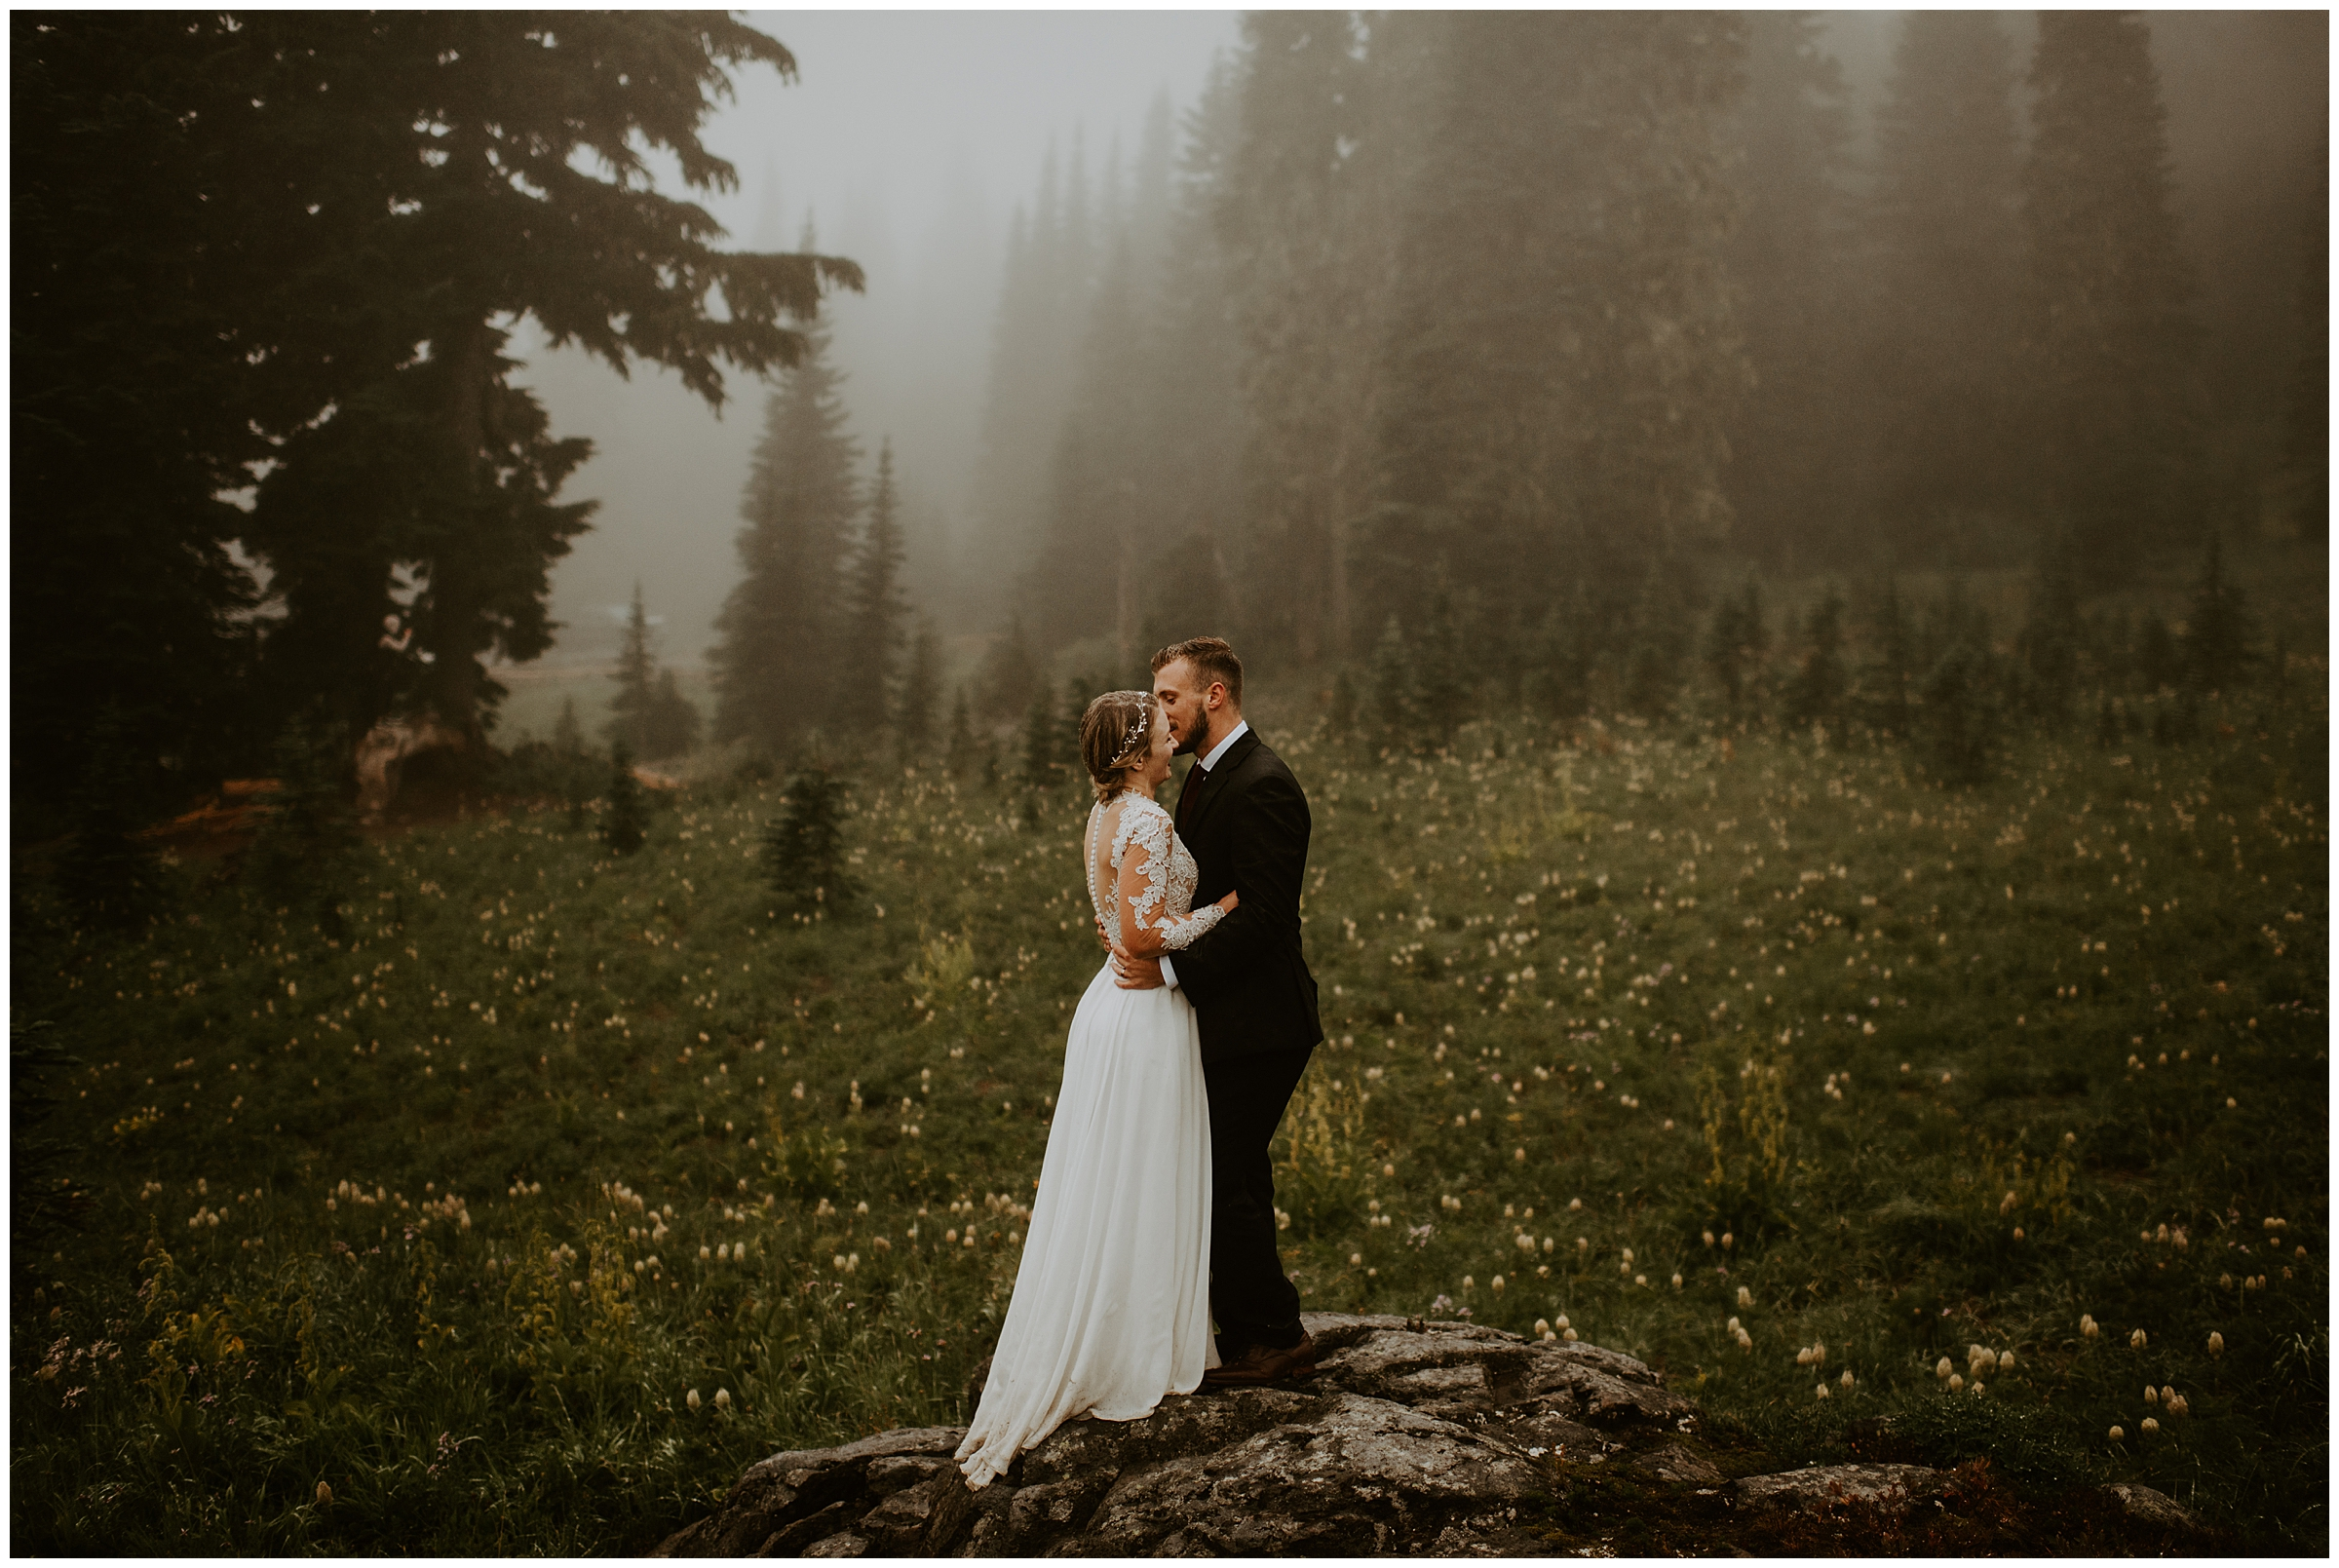 Cameo + Dawson's Foggy Mt. Rainier Wedding Portrait Session at Tipsoo Lake, WA by Seattle Elopement Photographer, Kamra Fuller Photography